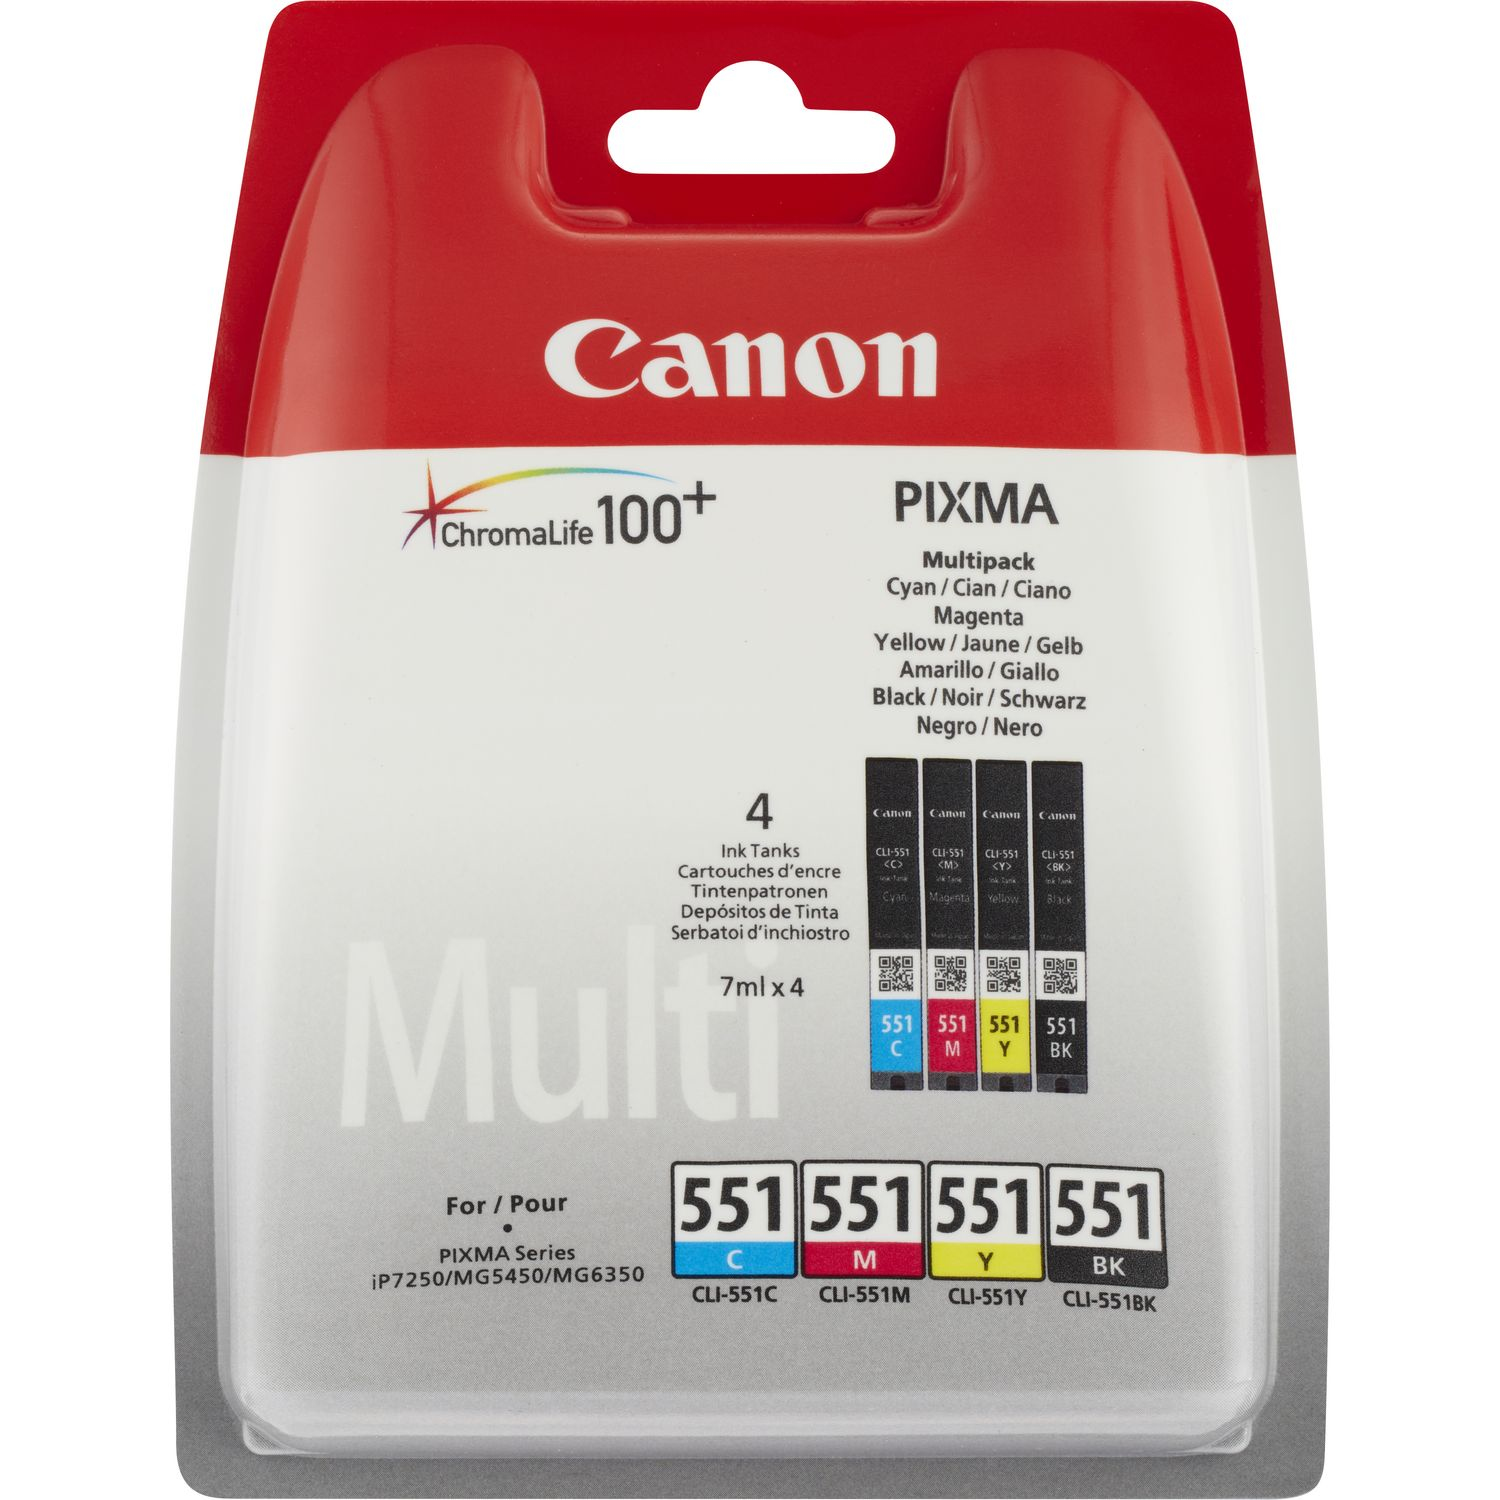 Canon CLI-551 C/M/Y/BK Multipack - 4-pack - Black, Yellow, Cyan, Magenta - Original - Ink Tank - For PIXMA IP8750, IX6850, MG5550, MG5650, MG5655, MG6450, MG6650, MG7150, MG7550, MX725, MX925 - C2000